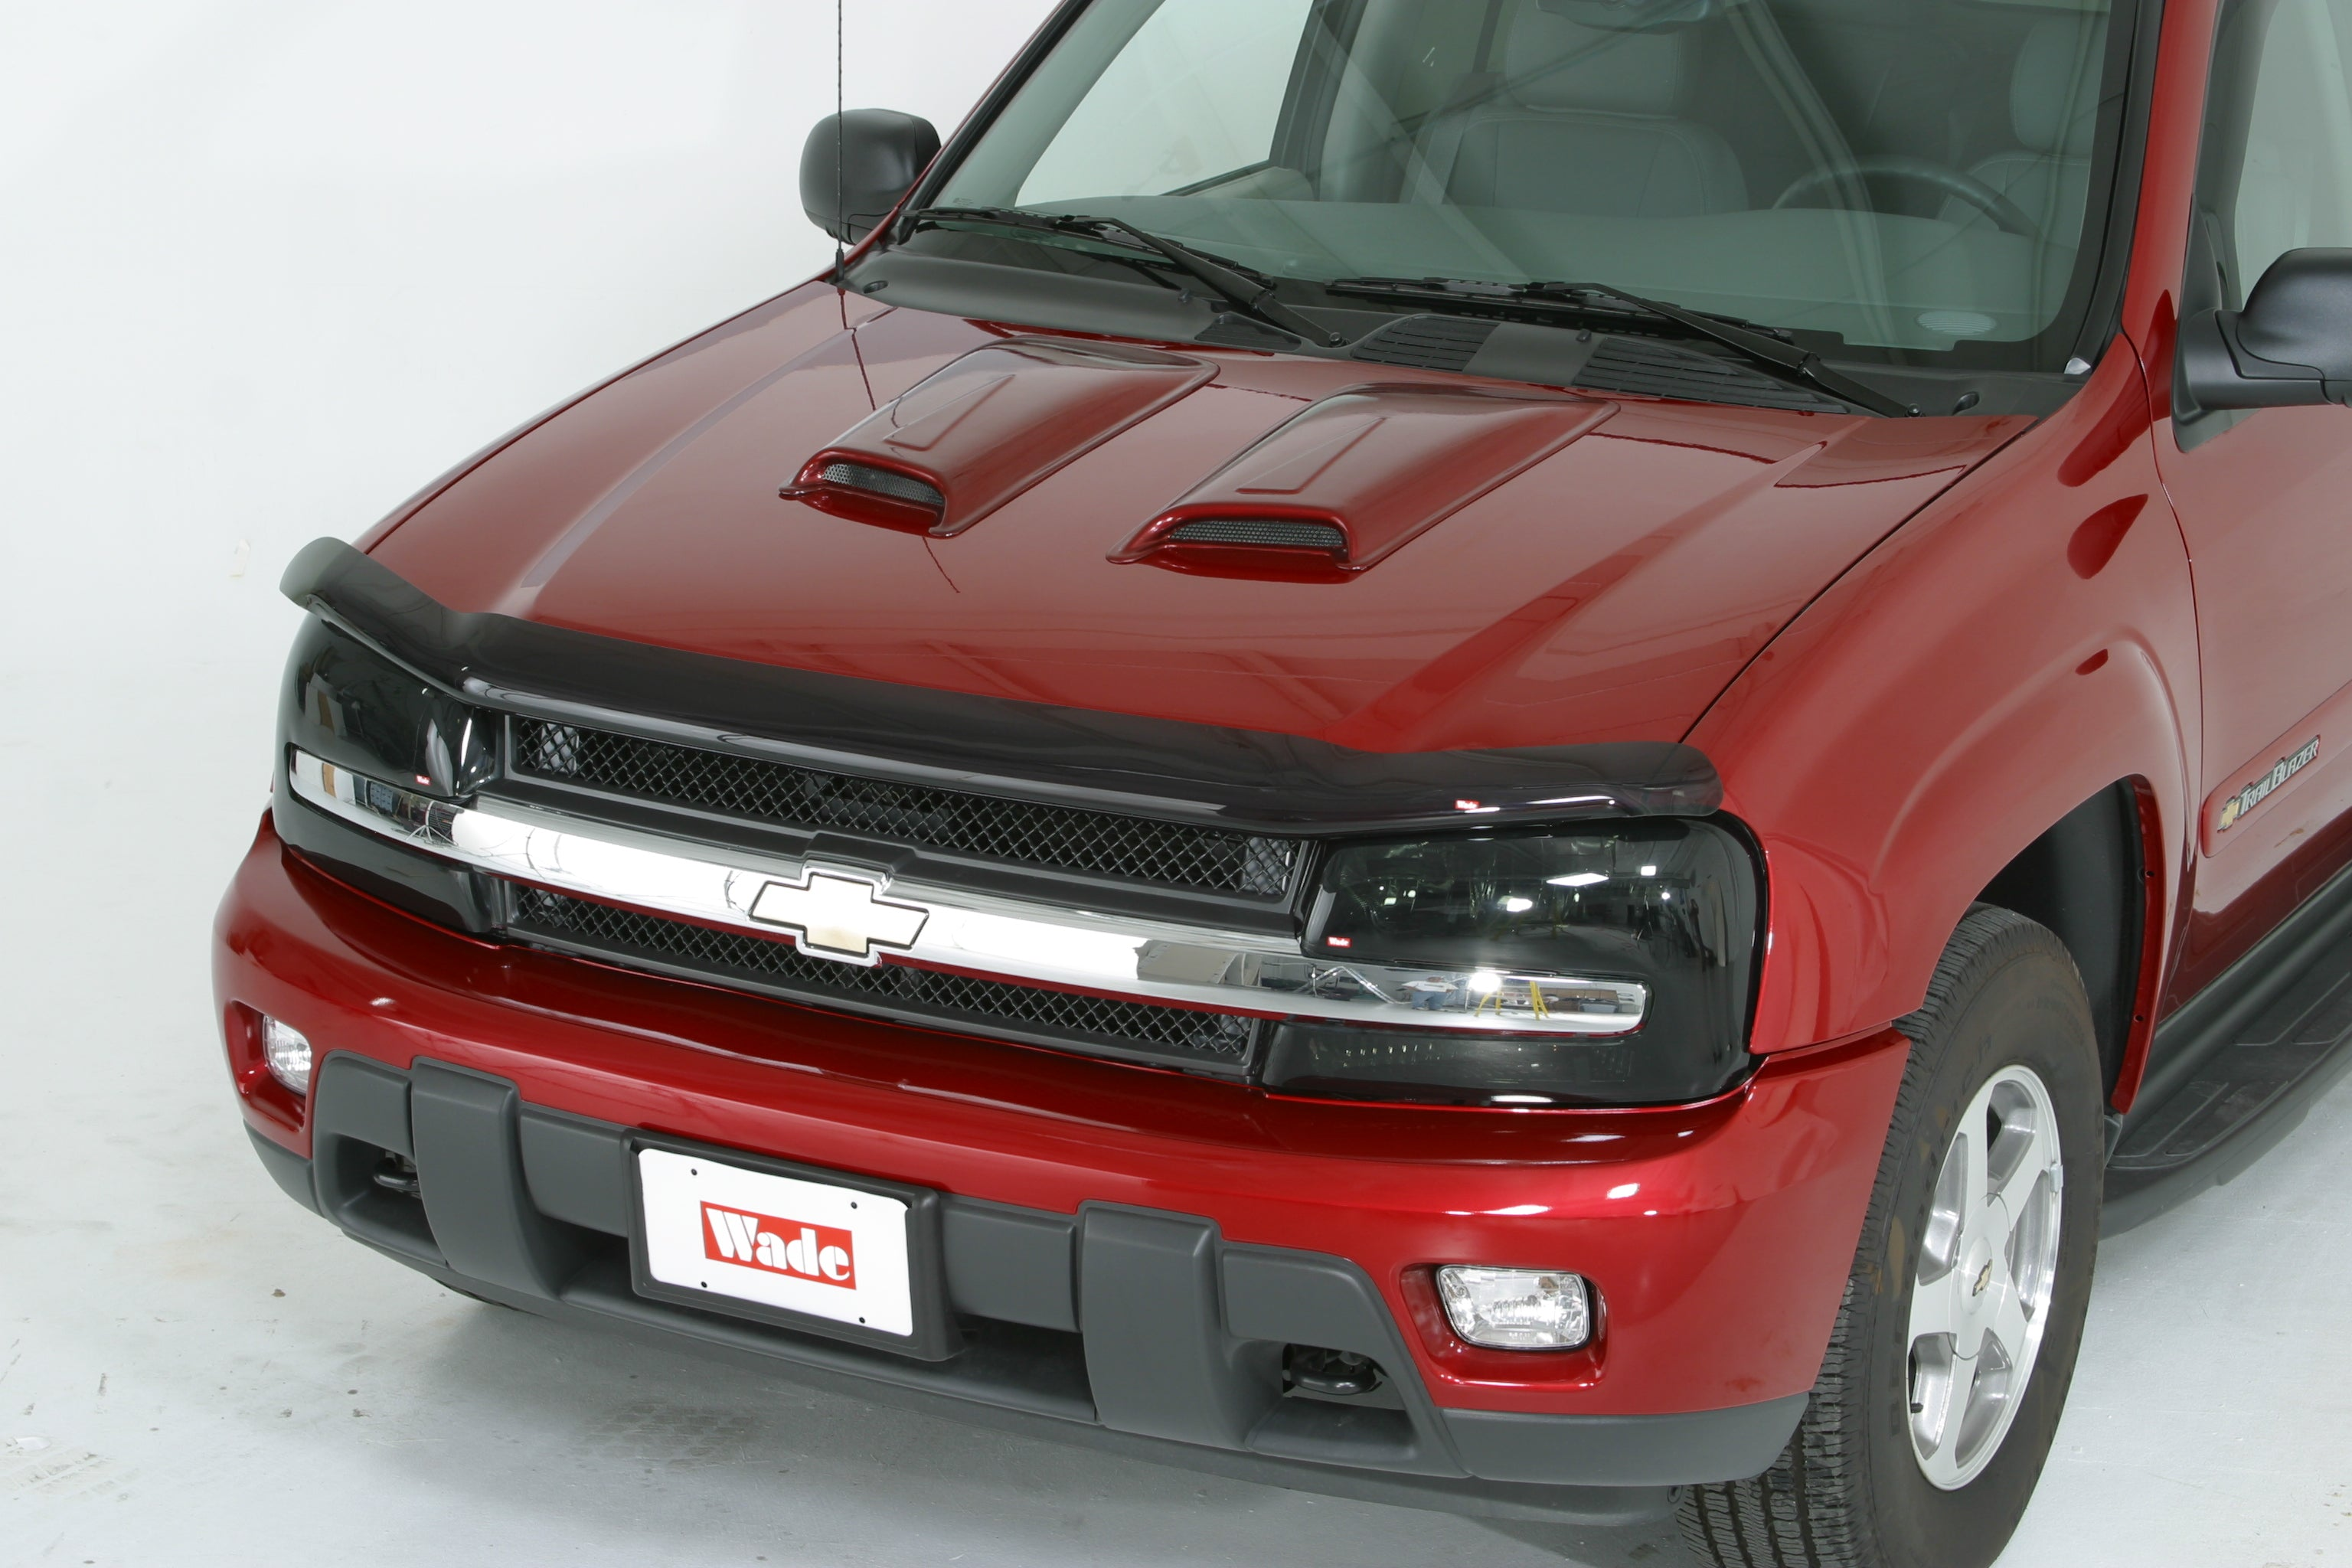 1995 Nissan Pickup 4WD (flush mount) Head Light Covers